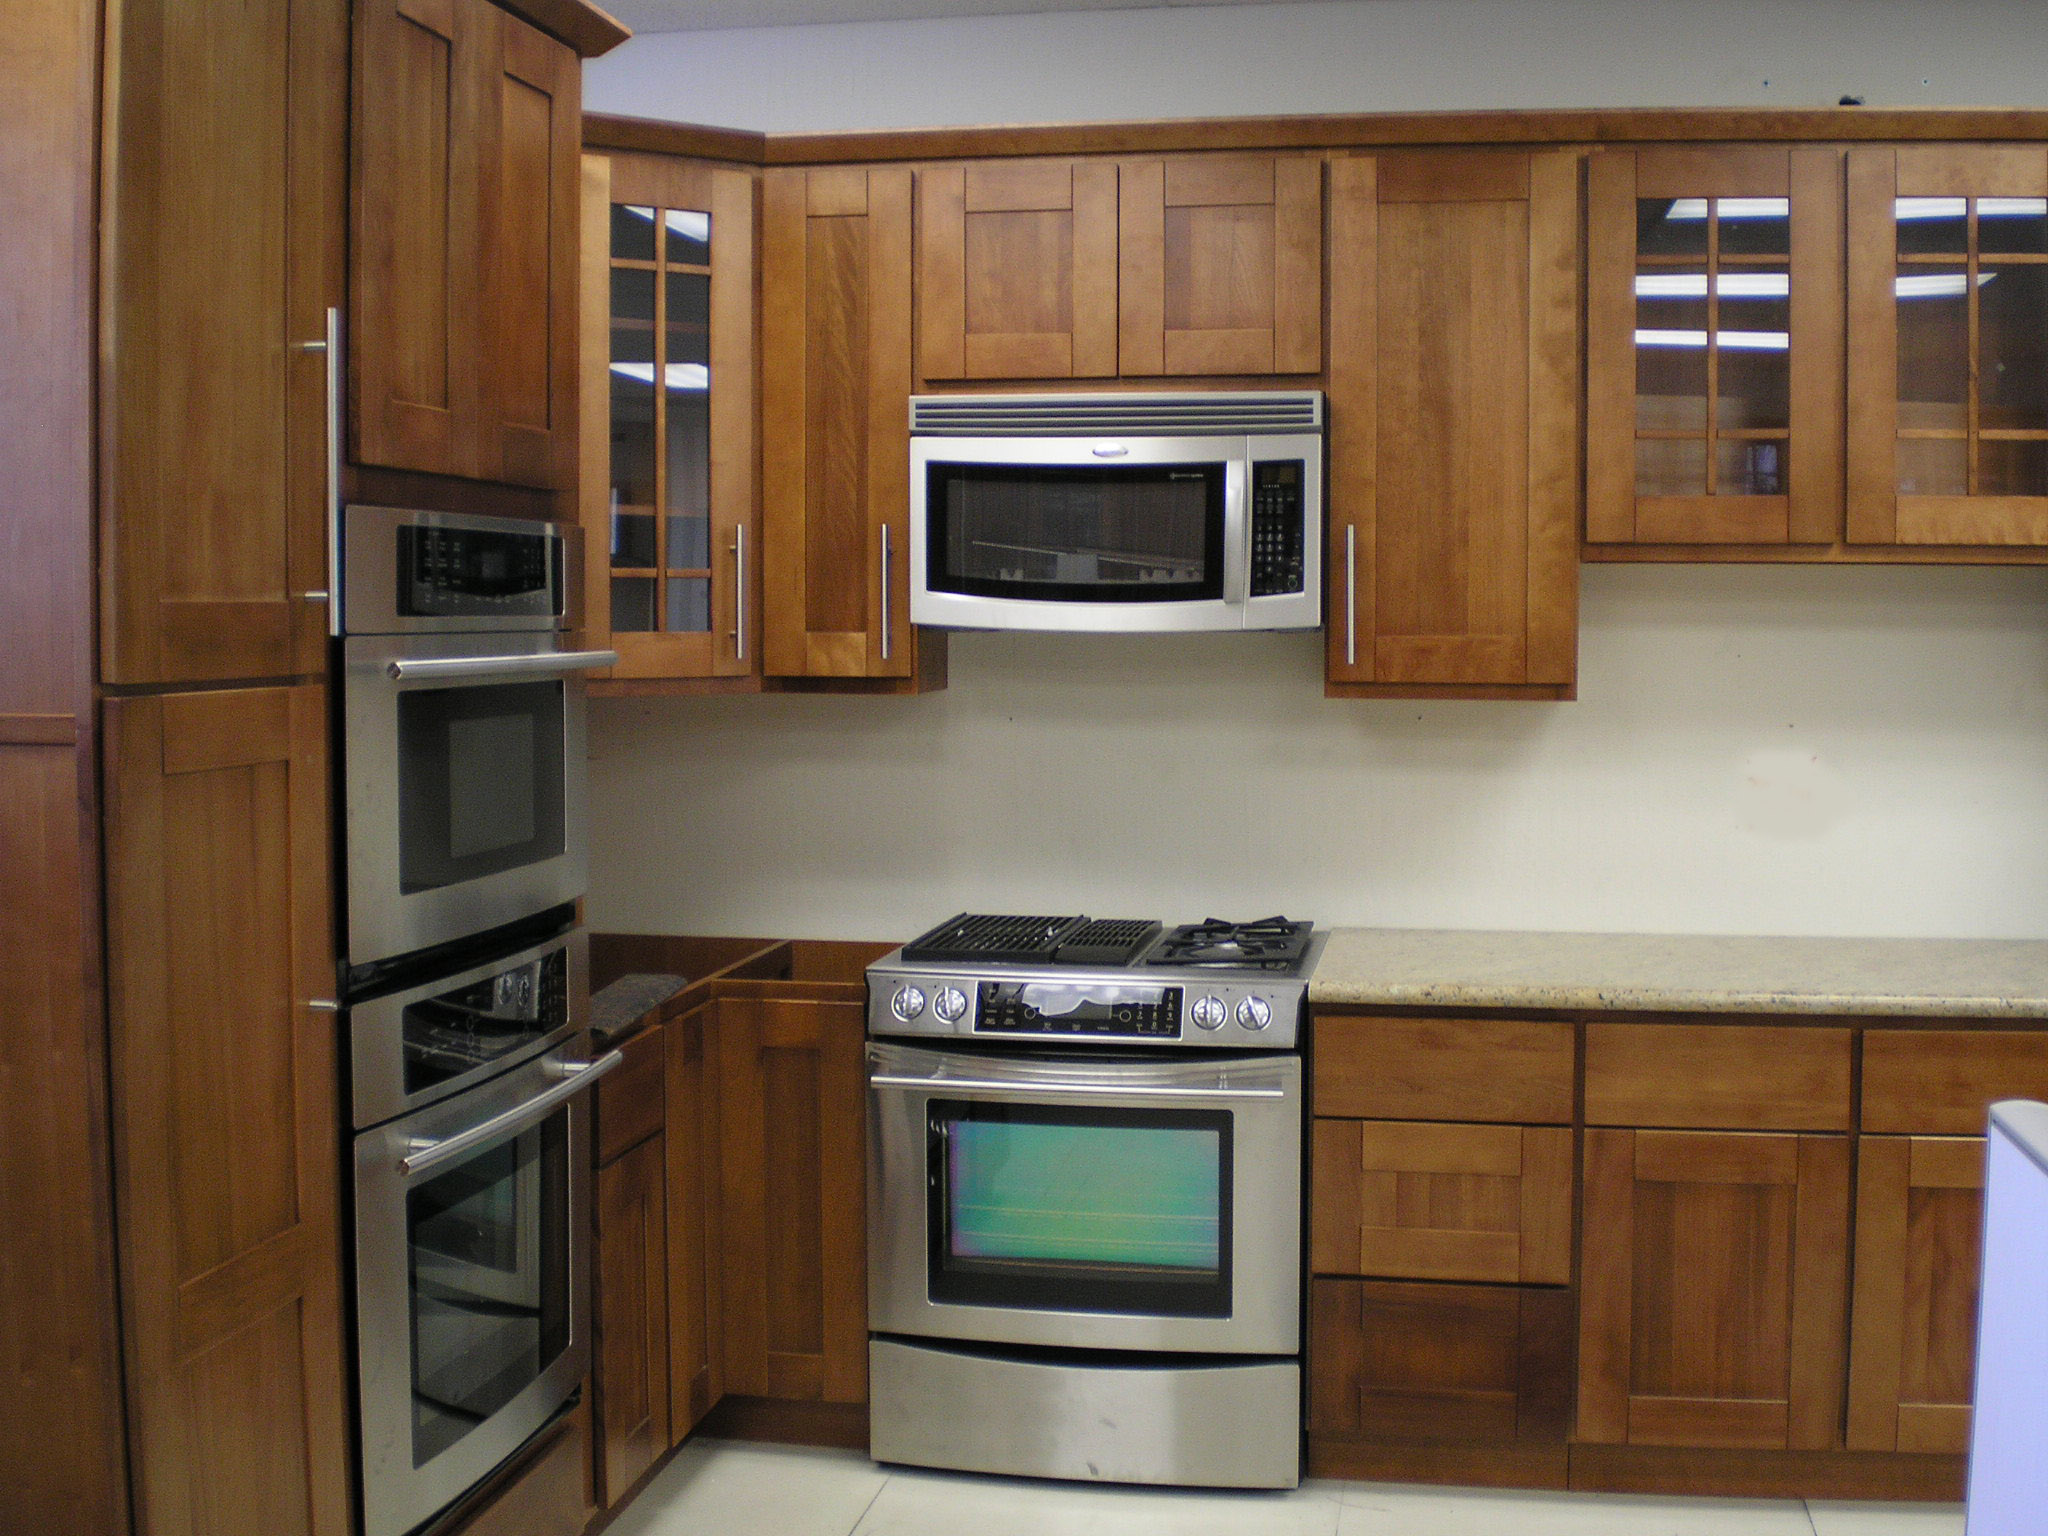 shaker kitchen cabinets shaker kitchen cabinets Discount All Wood Cherry Kitchen Cabinets